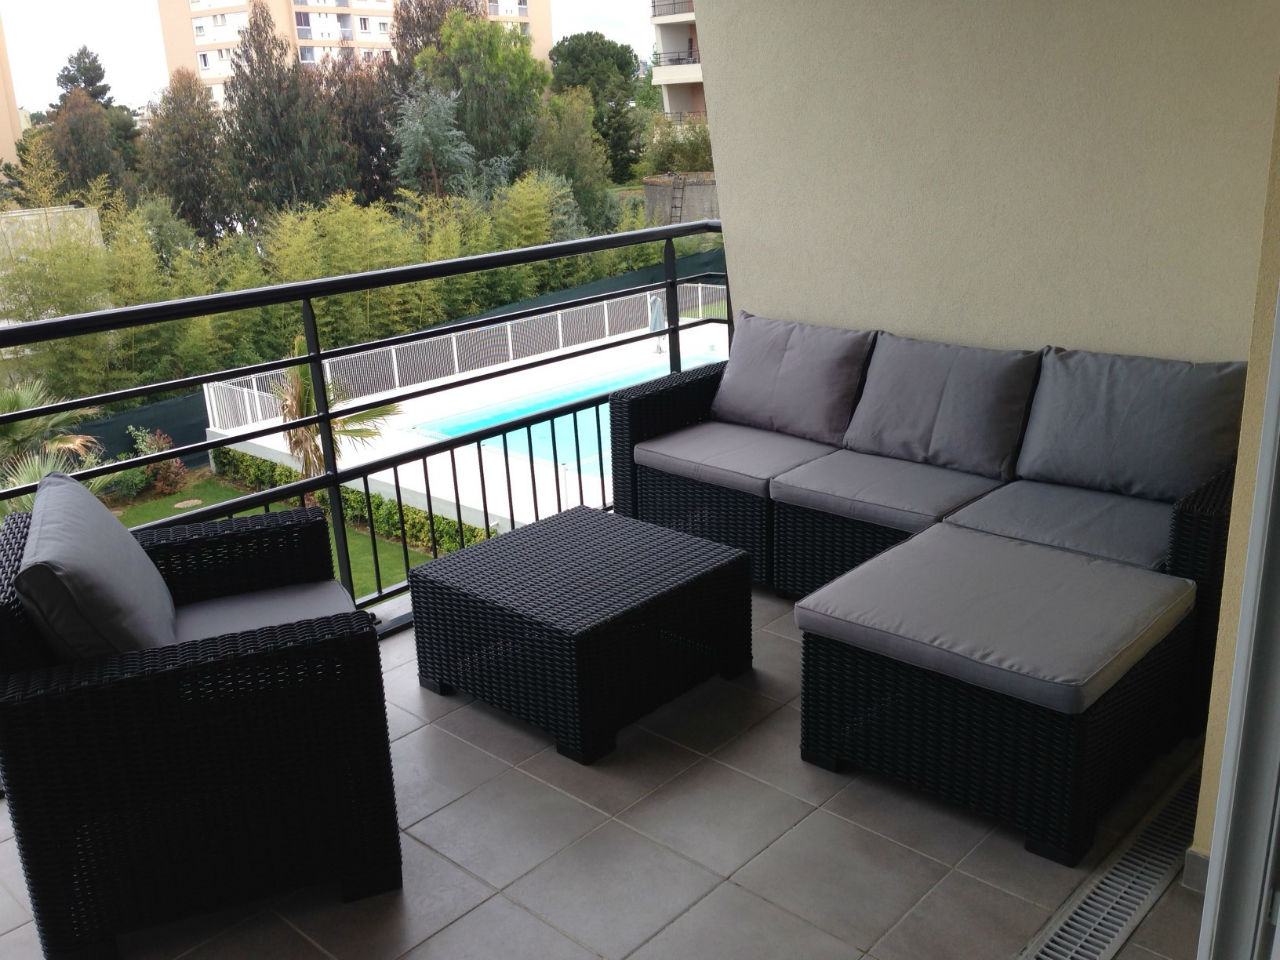 Comment Amnager Sa Terrasse